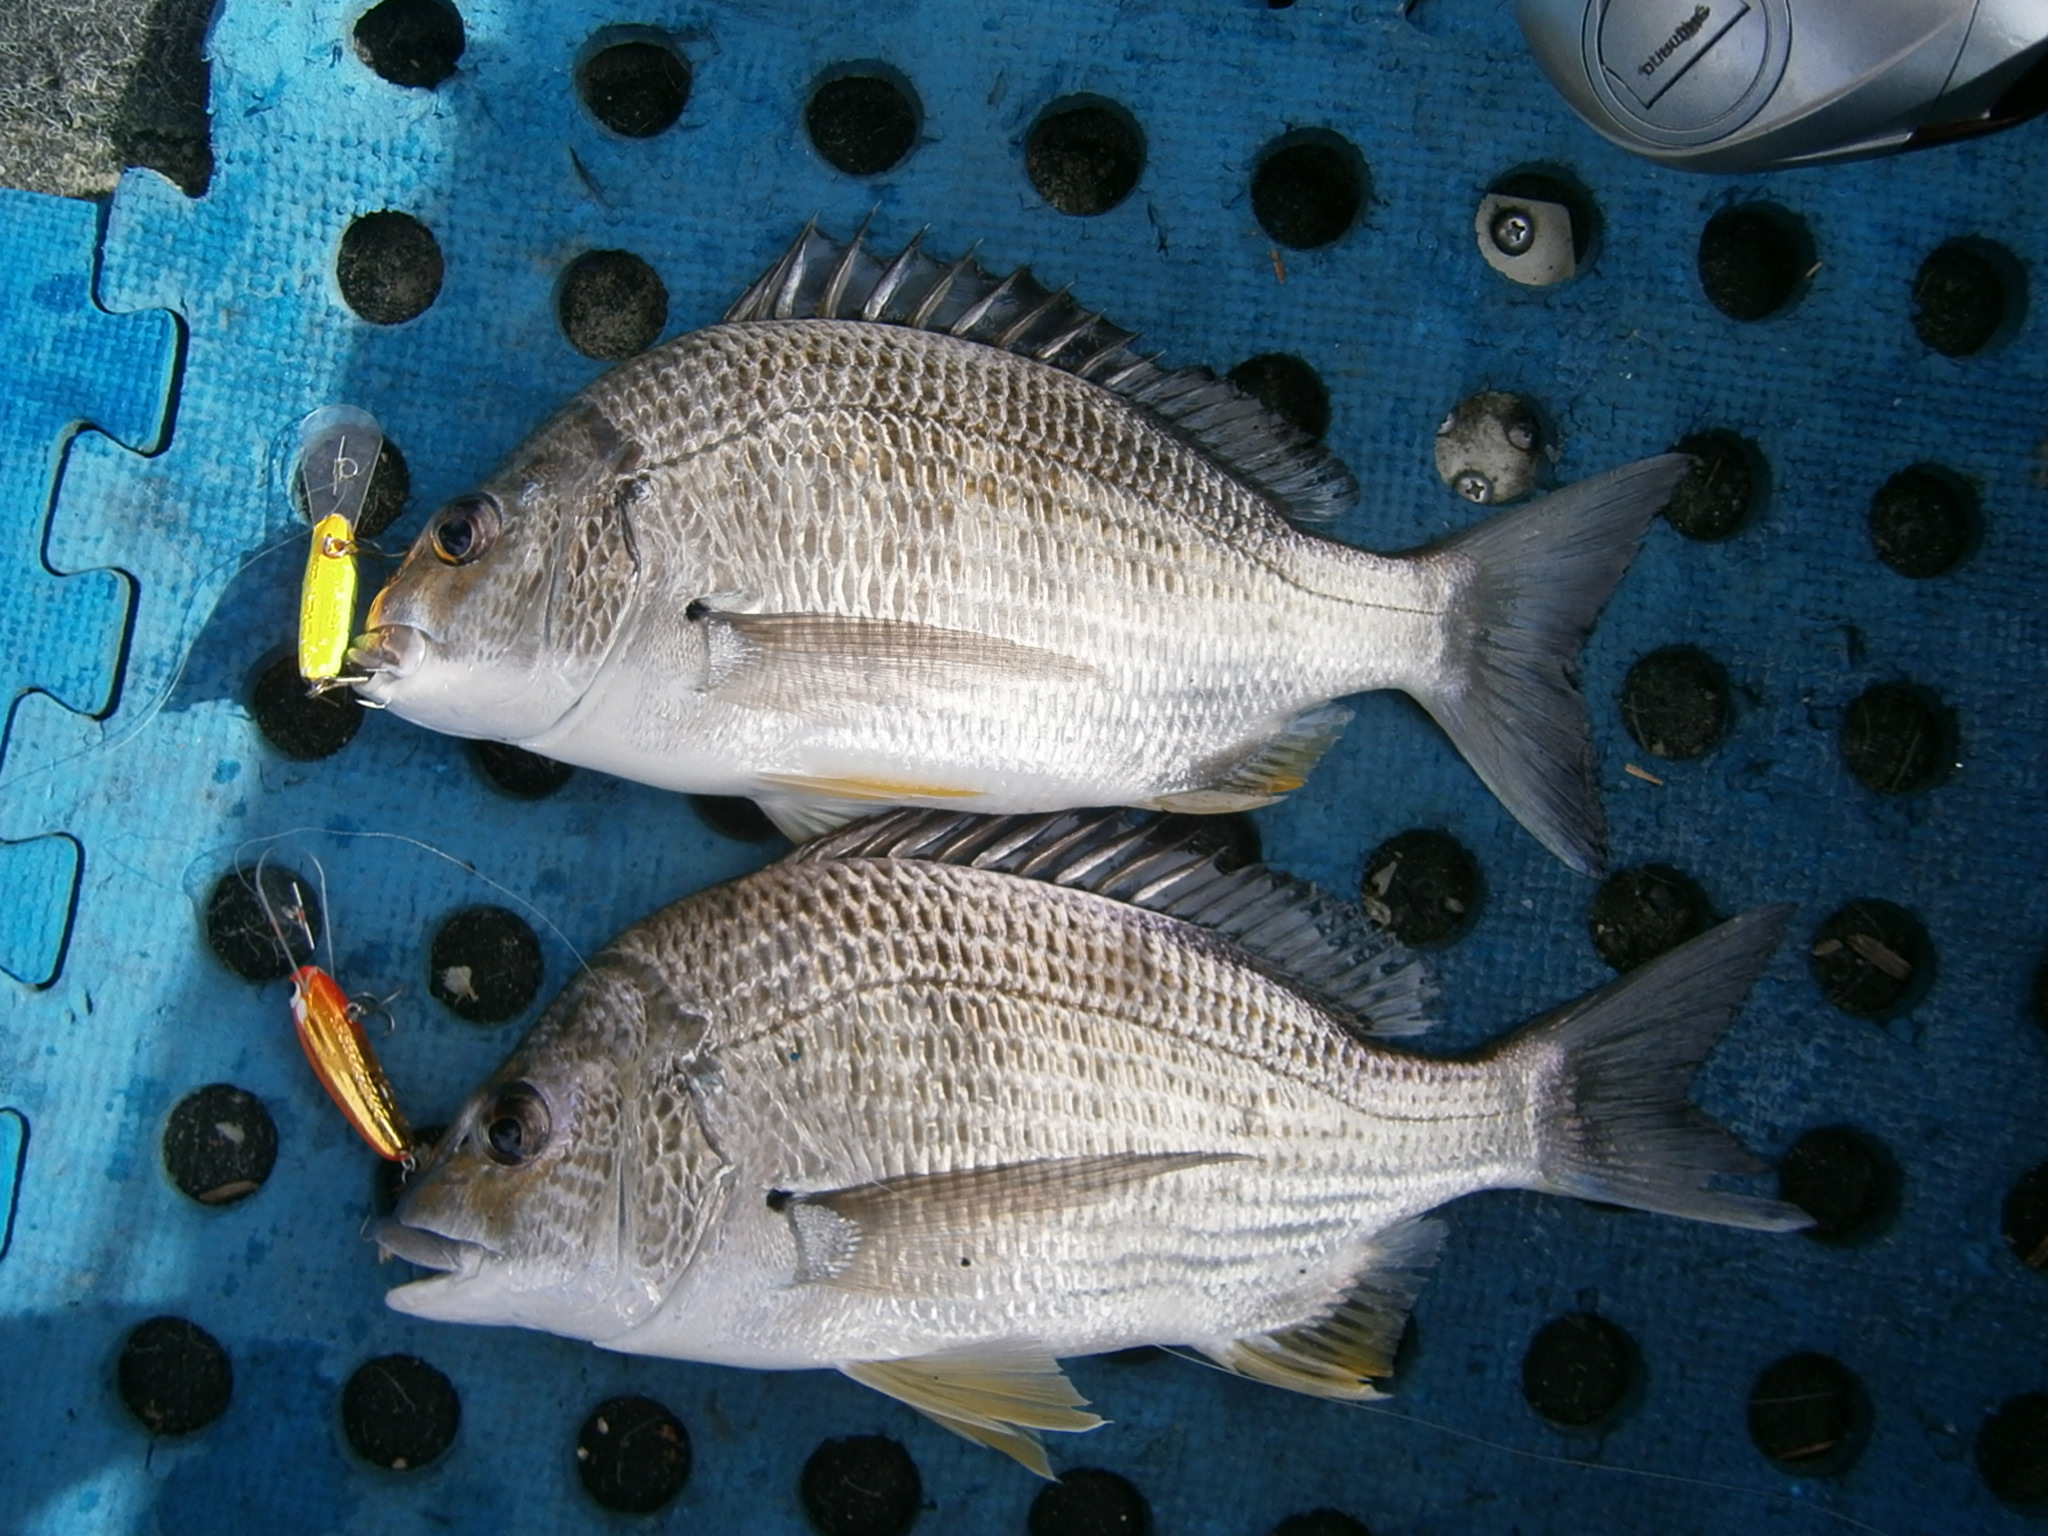 A double hook-up on quality bream that fell for a couple of well-trolled Pontoon21 lures.